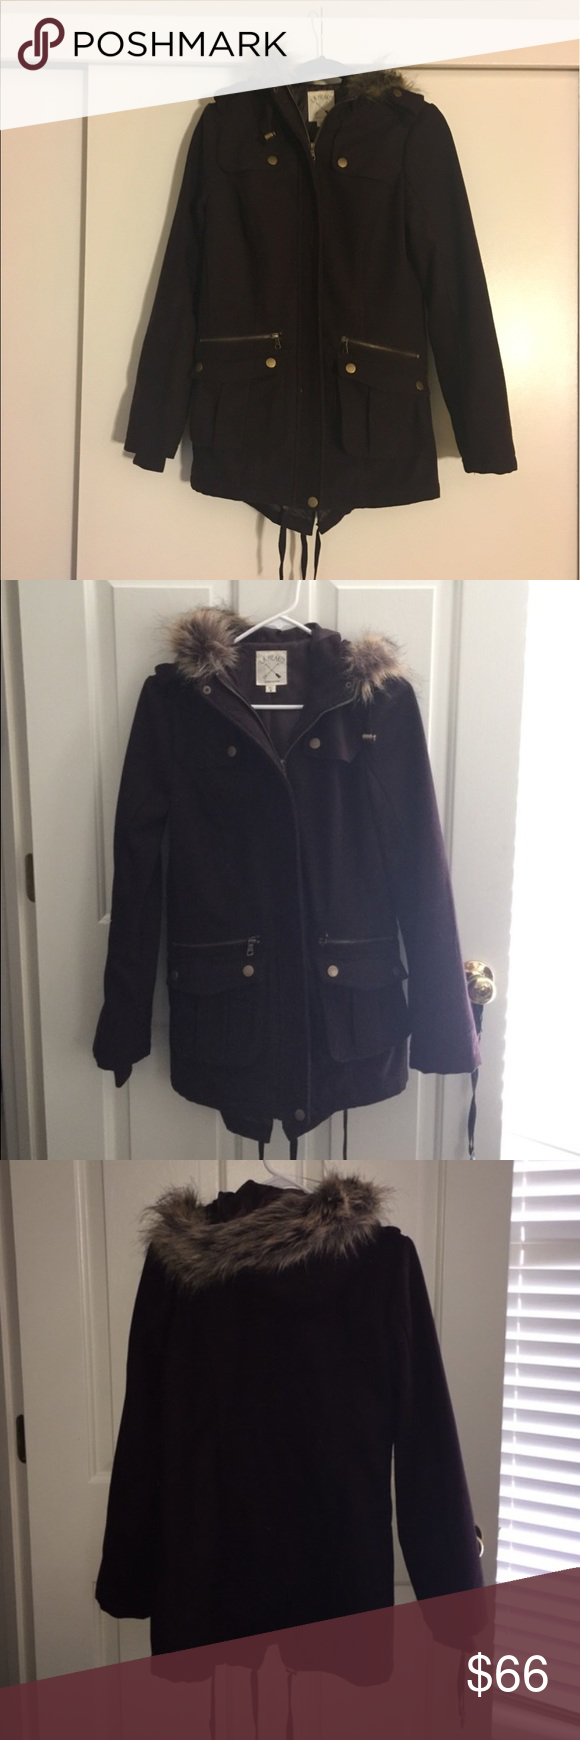 LA Hearts Anorak Super cute and in great condition, purple LA Hearts Anorak from PacSun. Perfect to pair with any outfit for a cold winter day. Open to reasonable offers, rarely worn! LA Hearts Jackets & Coats